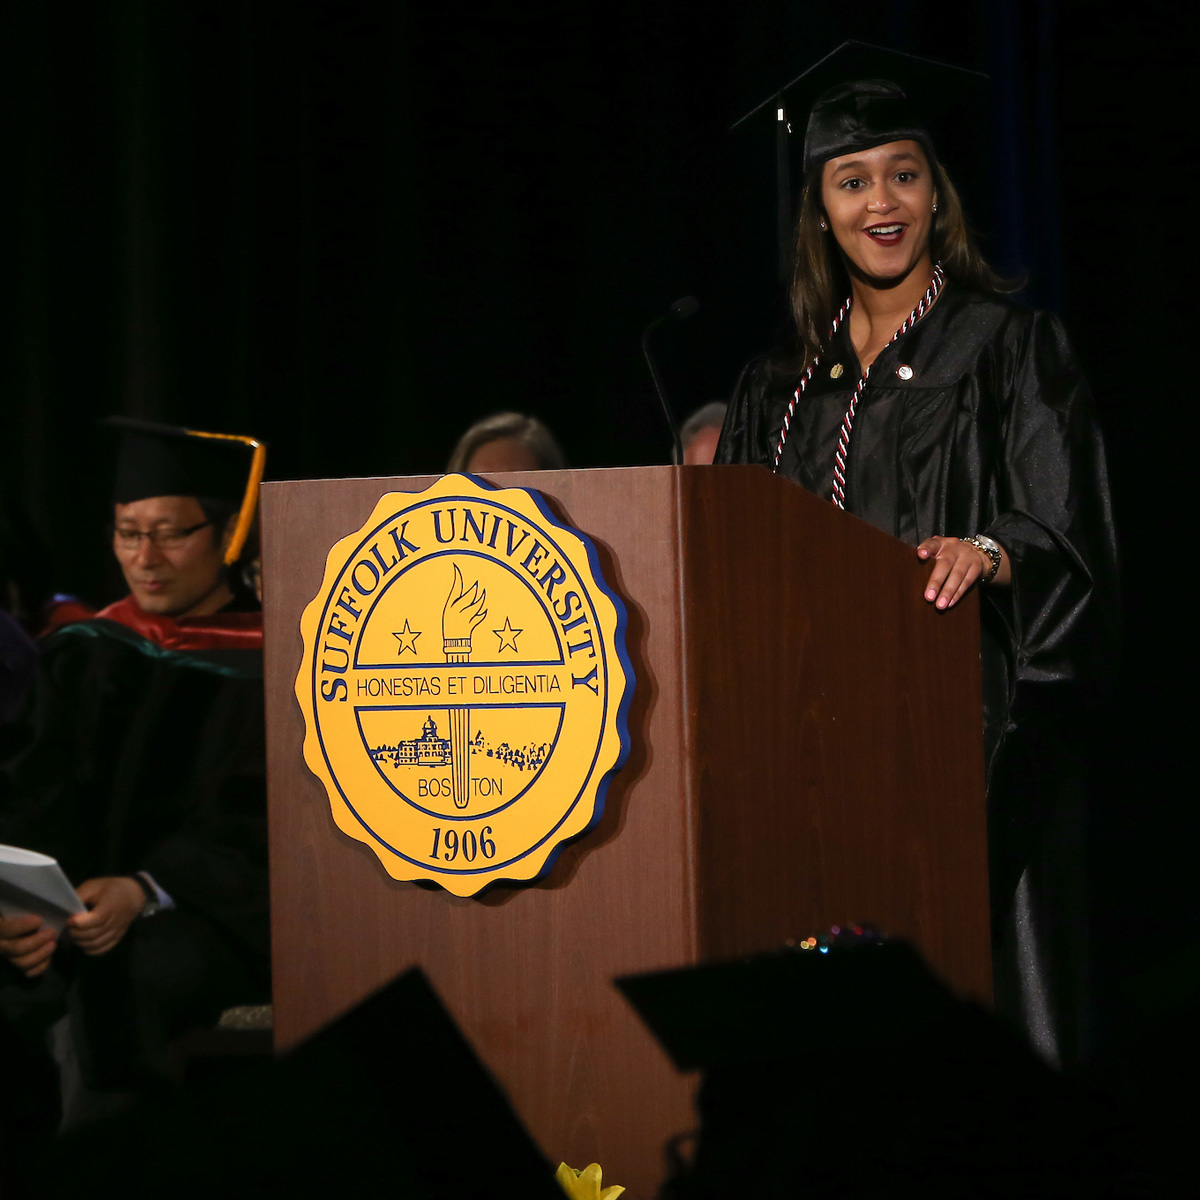 Elainy Mata giving a speech at her graduate degree Commencement ceremony.